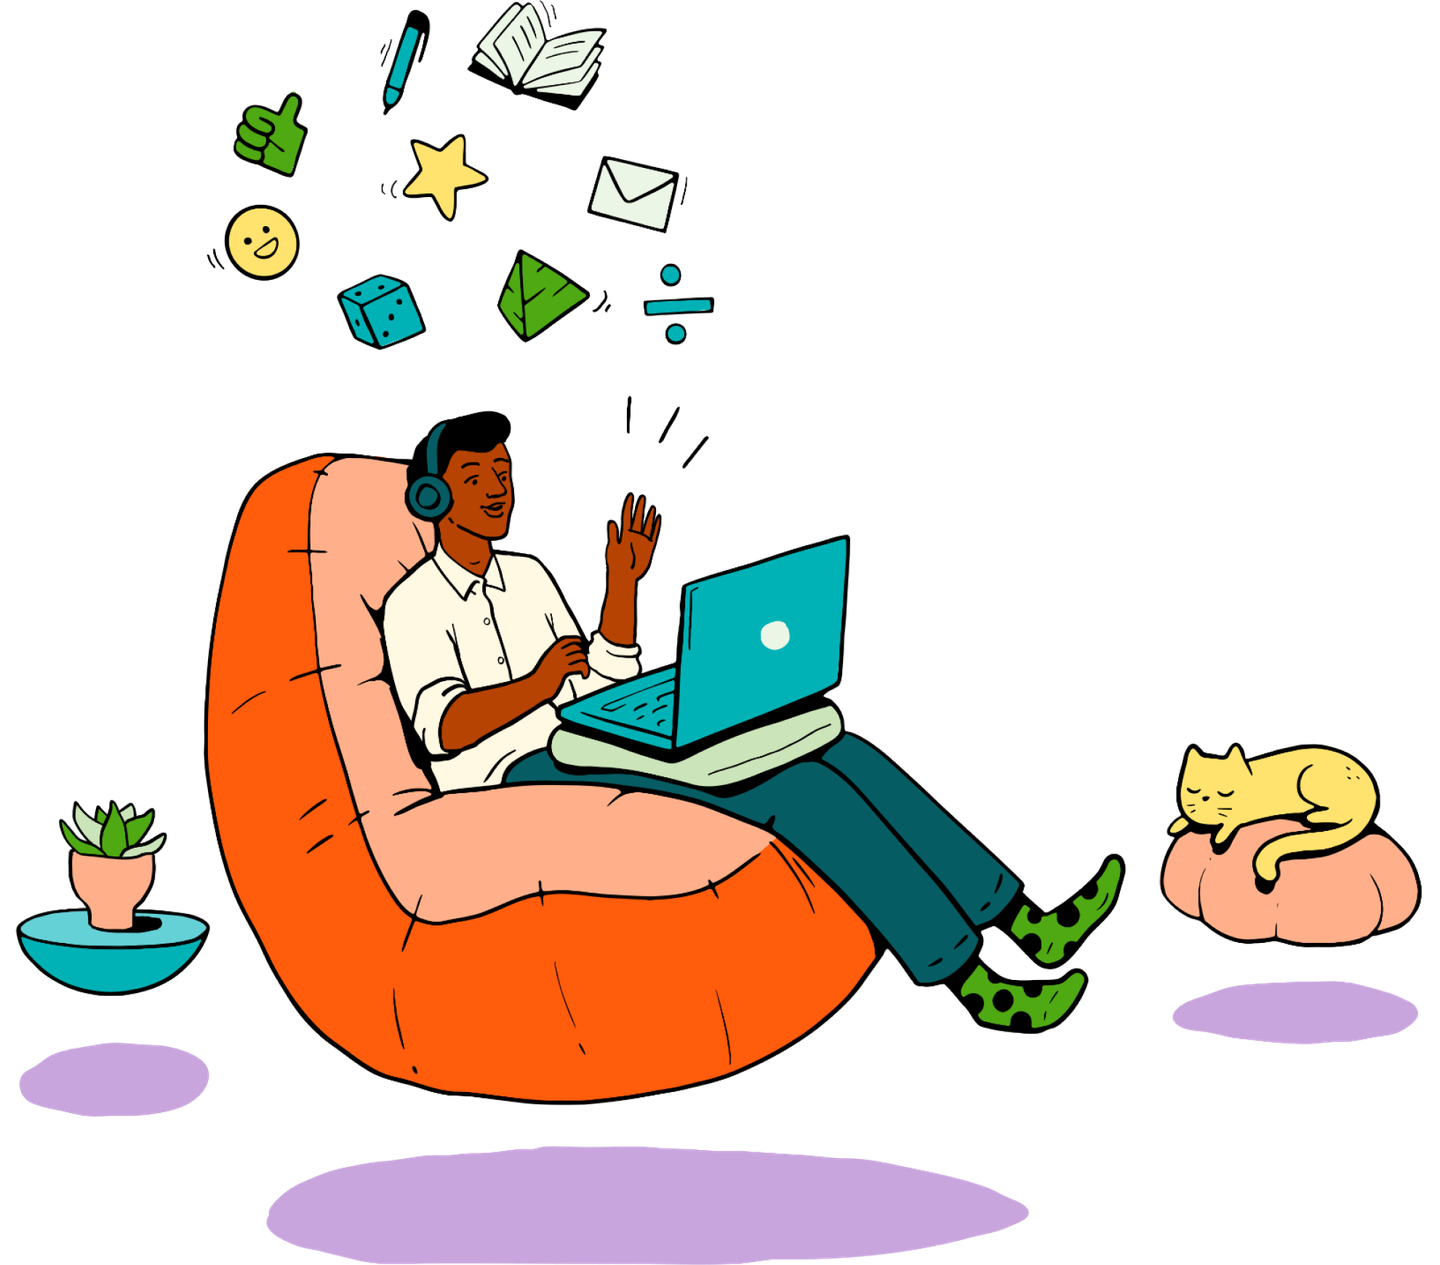 Illustration of a person sitting in a floating chair with headphones on a virtual call